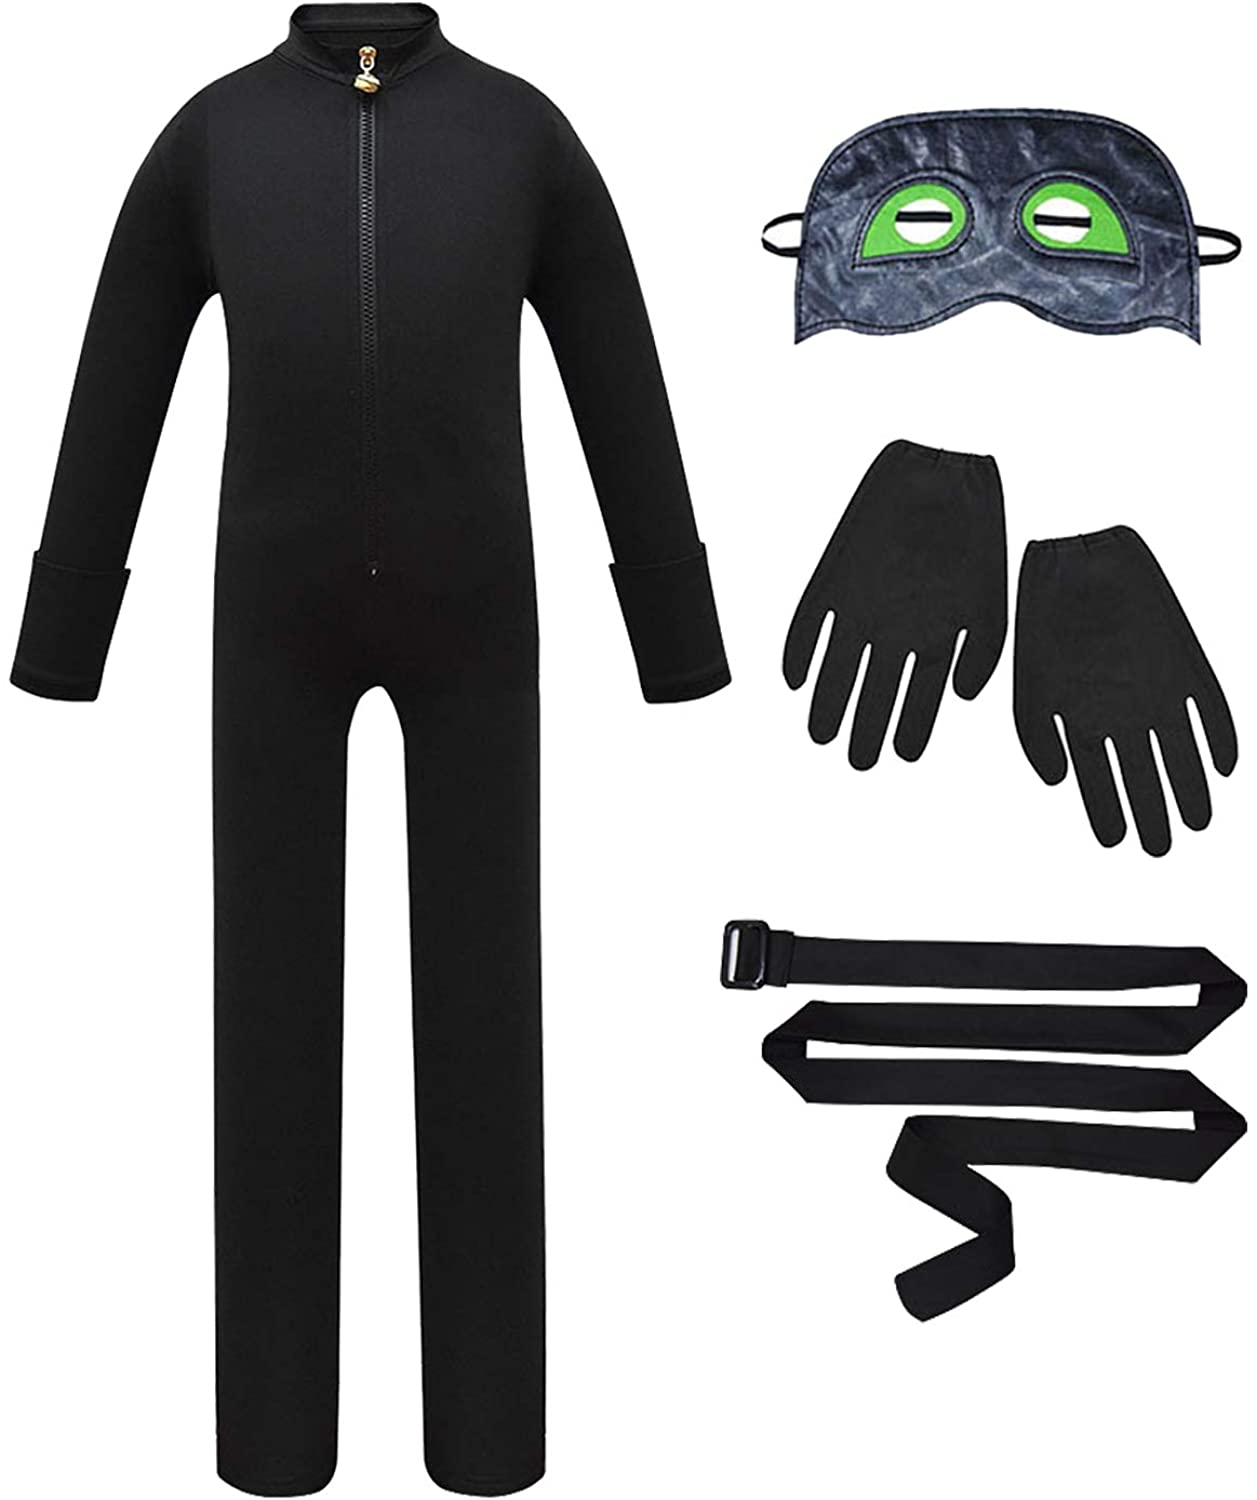 Boys Cosplay Outfit Unisex Birthday Party Role Play Jumpsuit Set 4Pcs